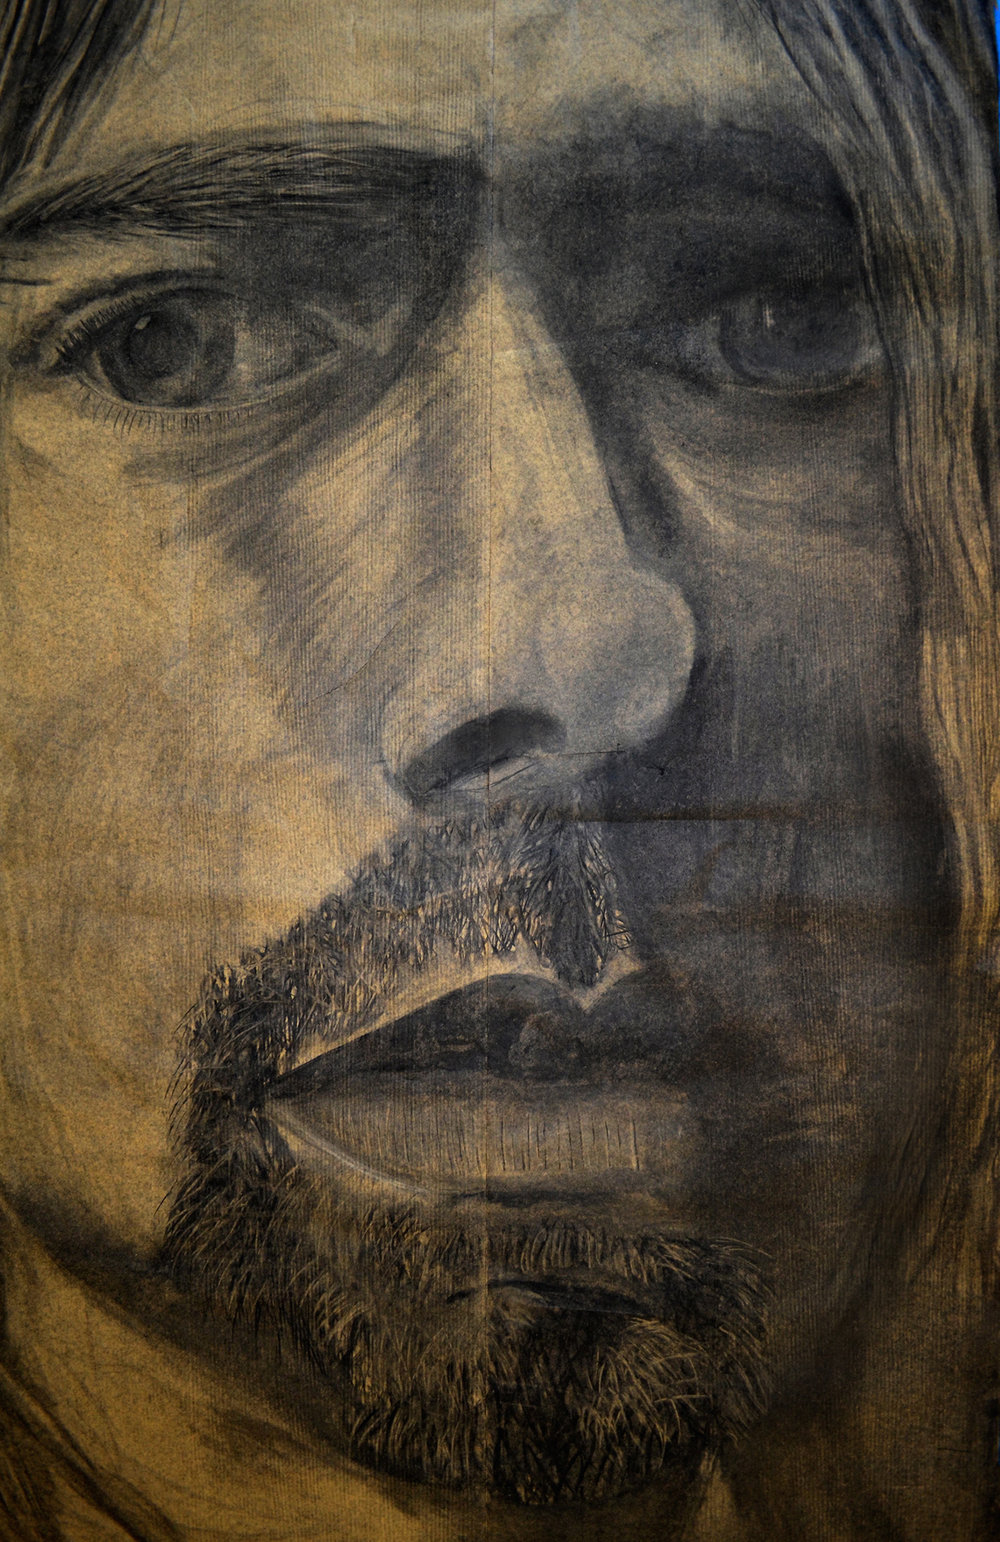 Charcoal portrait of Kurt Cobain on parchment paper. The piece is 20 ft. tall and 6 ft. wide